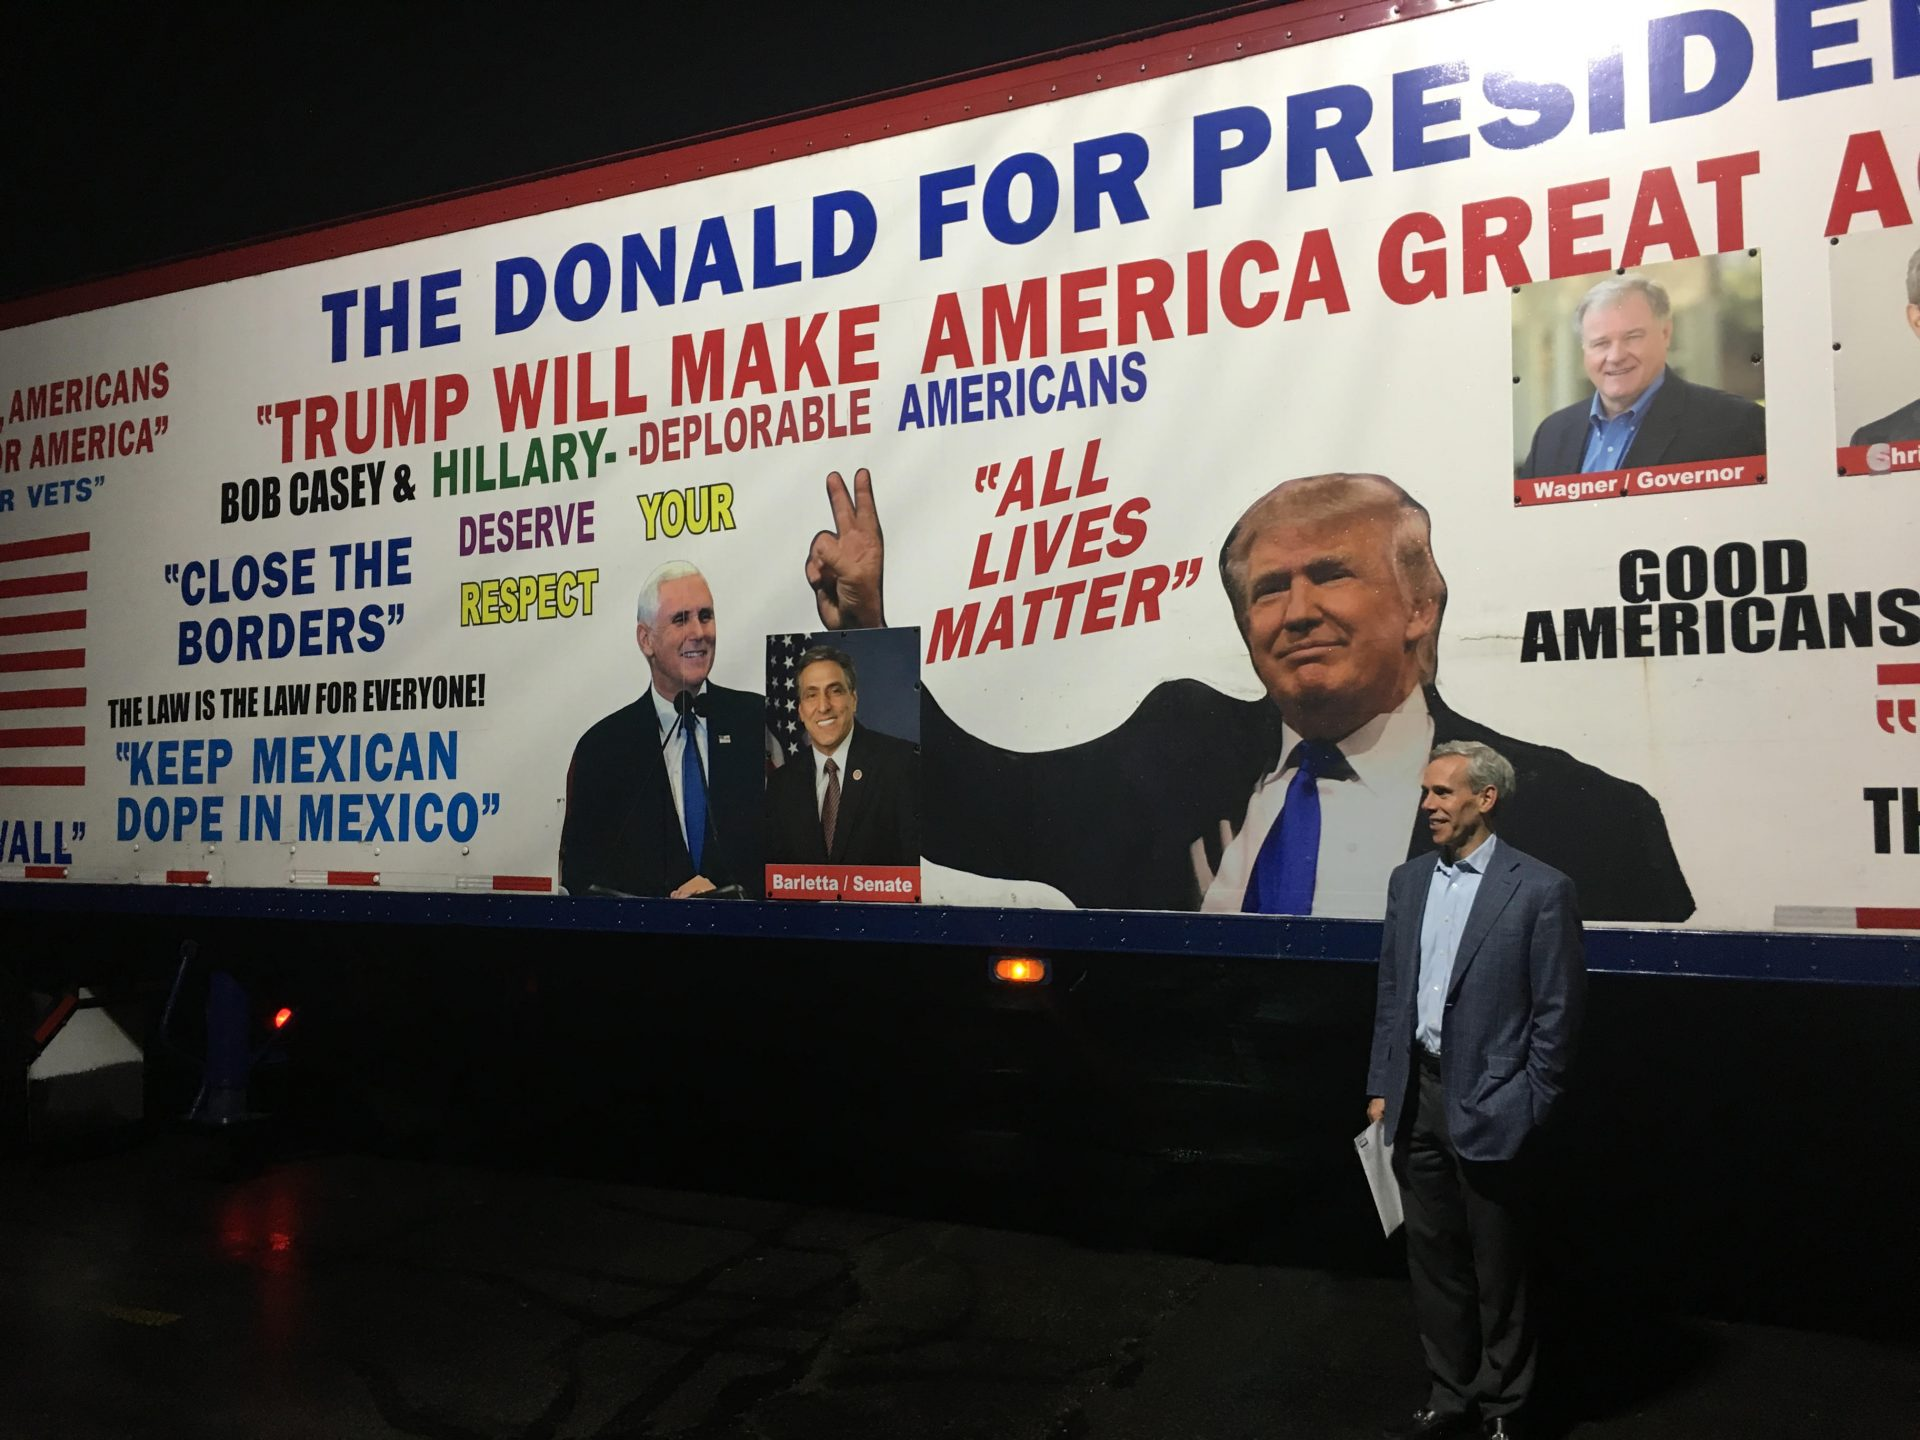 Republican congressional candidate John Chrin poses for a picture in front of a Donald Trump-themed tractor-trailer on Sept. 12, 2018 in Luzerne County.